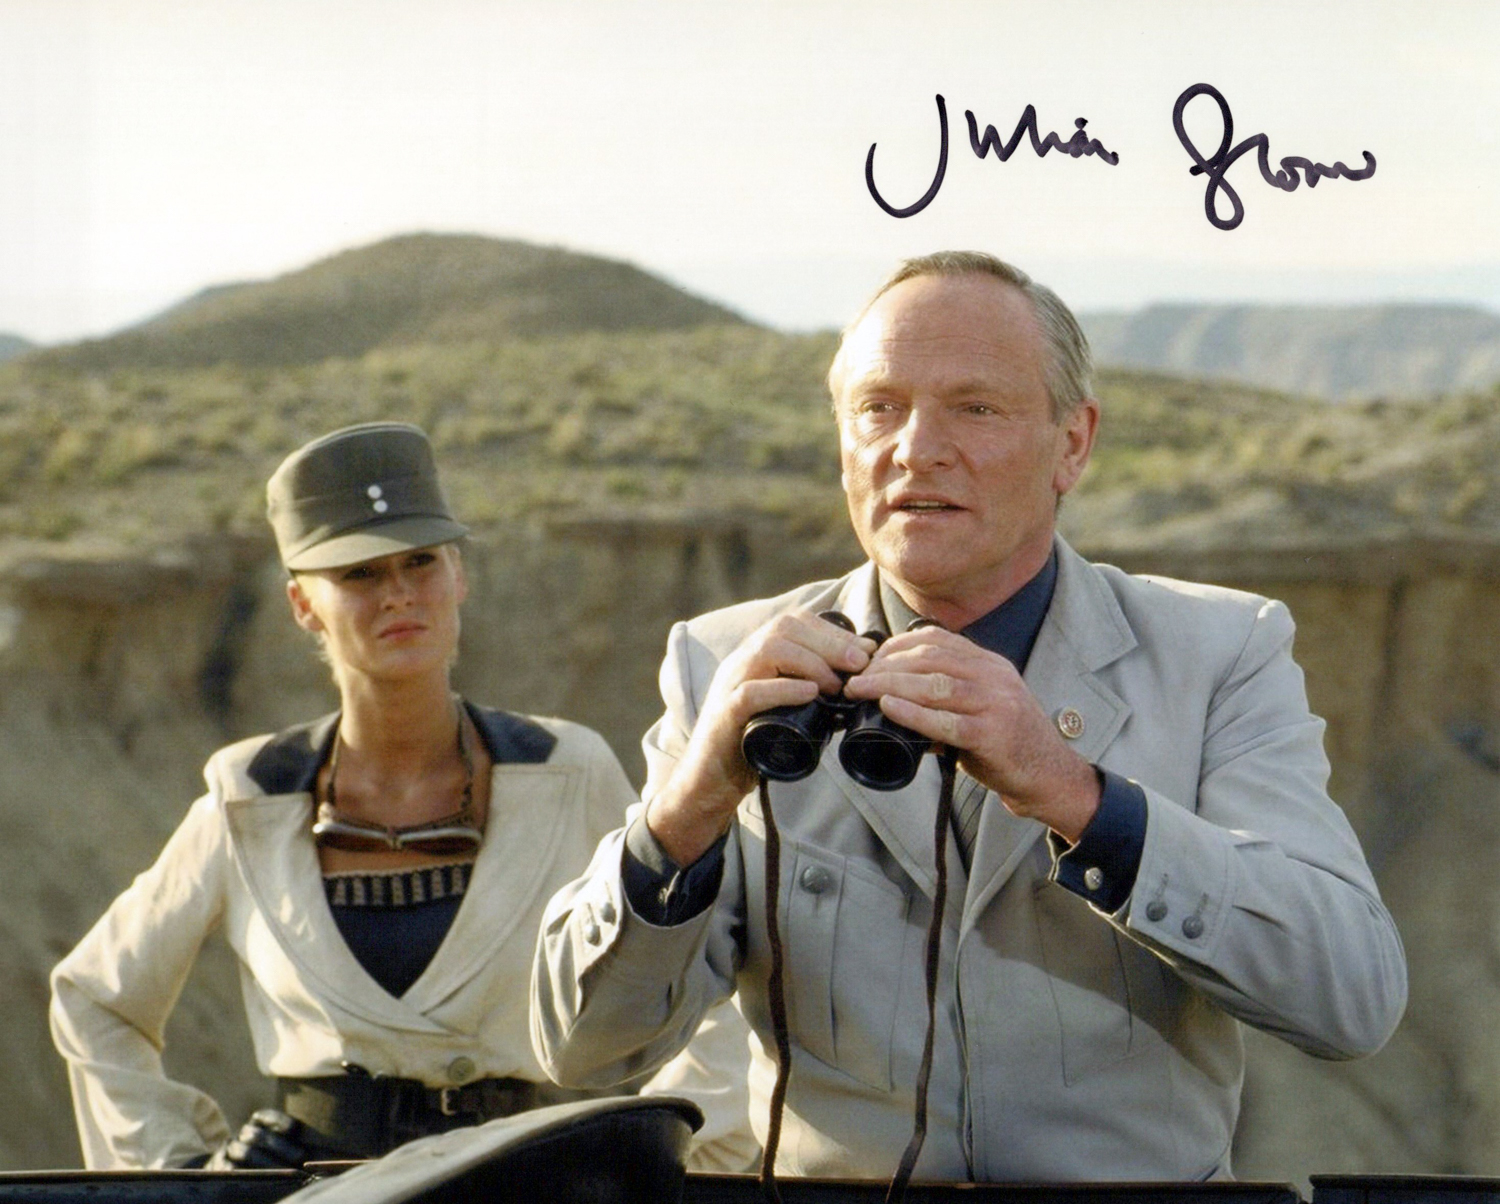 Julian Glover Original Autogramm auf Foto 20x25cm - Indiana Jones